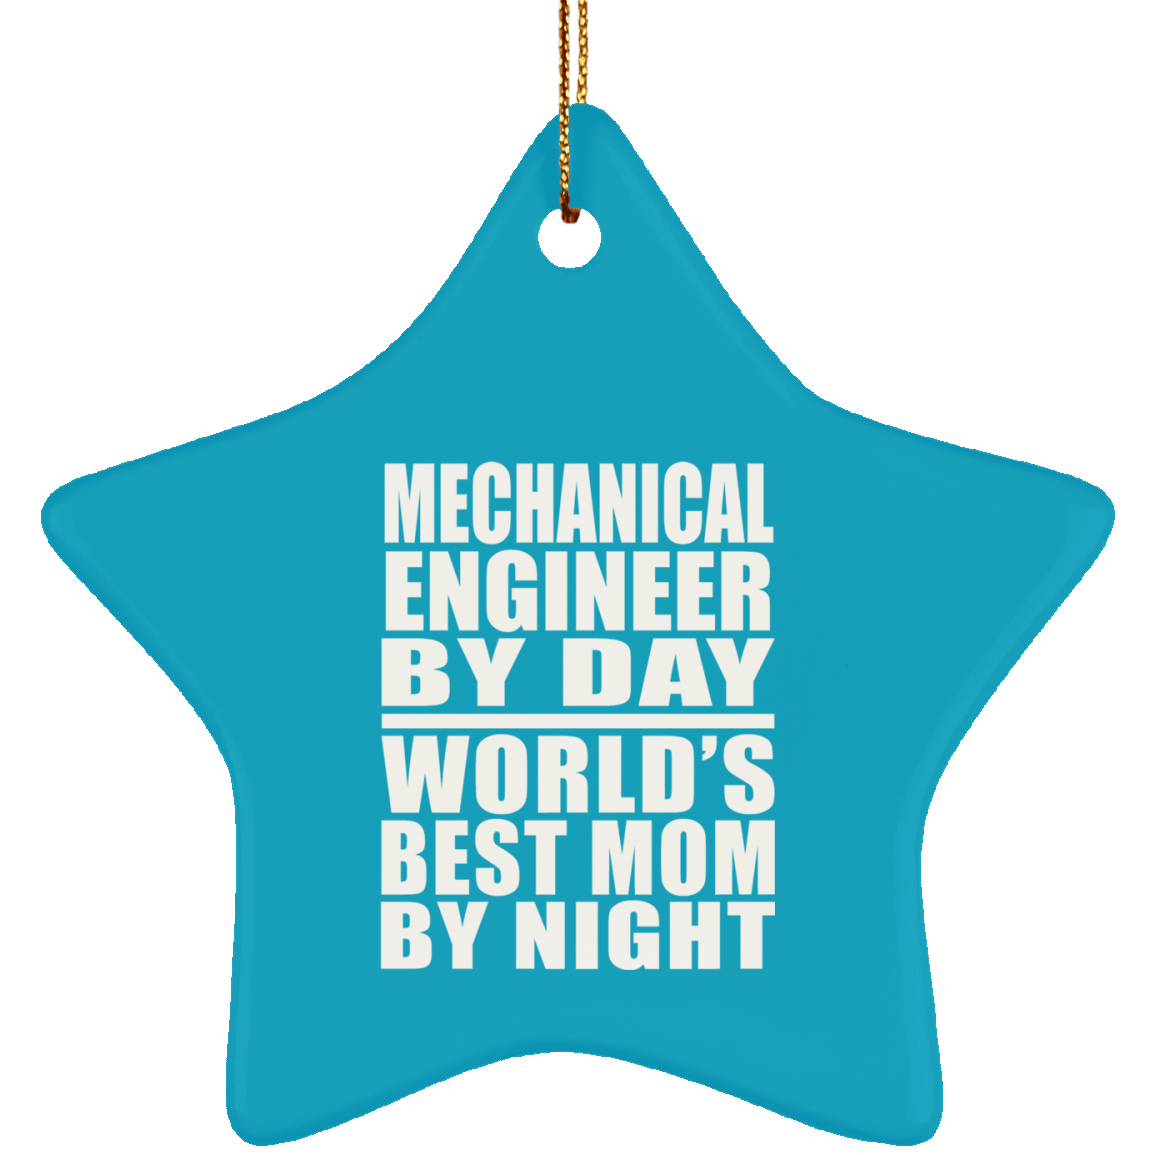 Mechanical Engineer By Day World's Best Mom By Night - Star Ornament